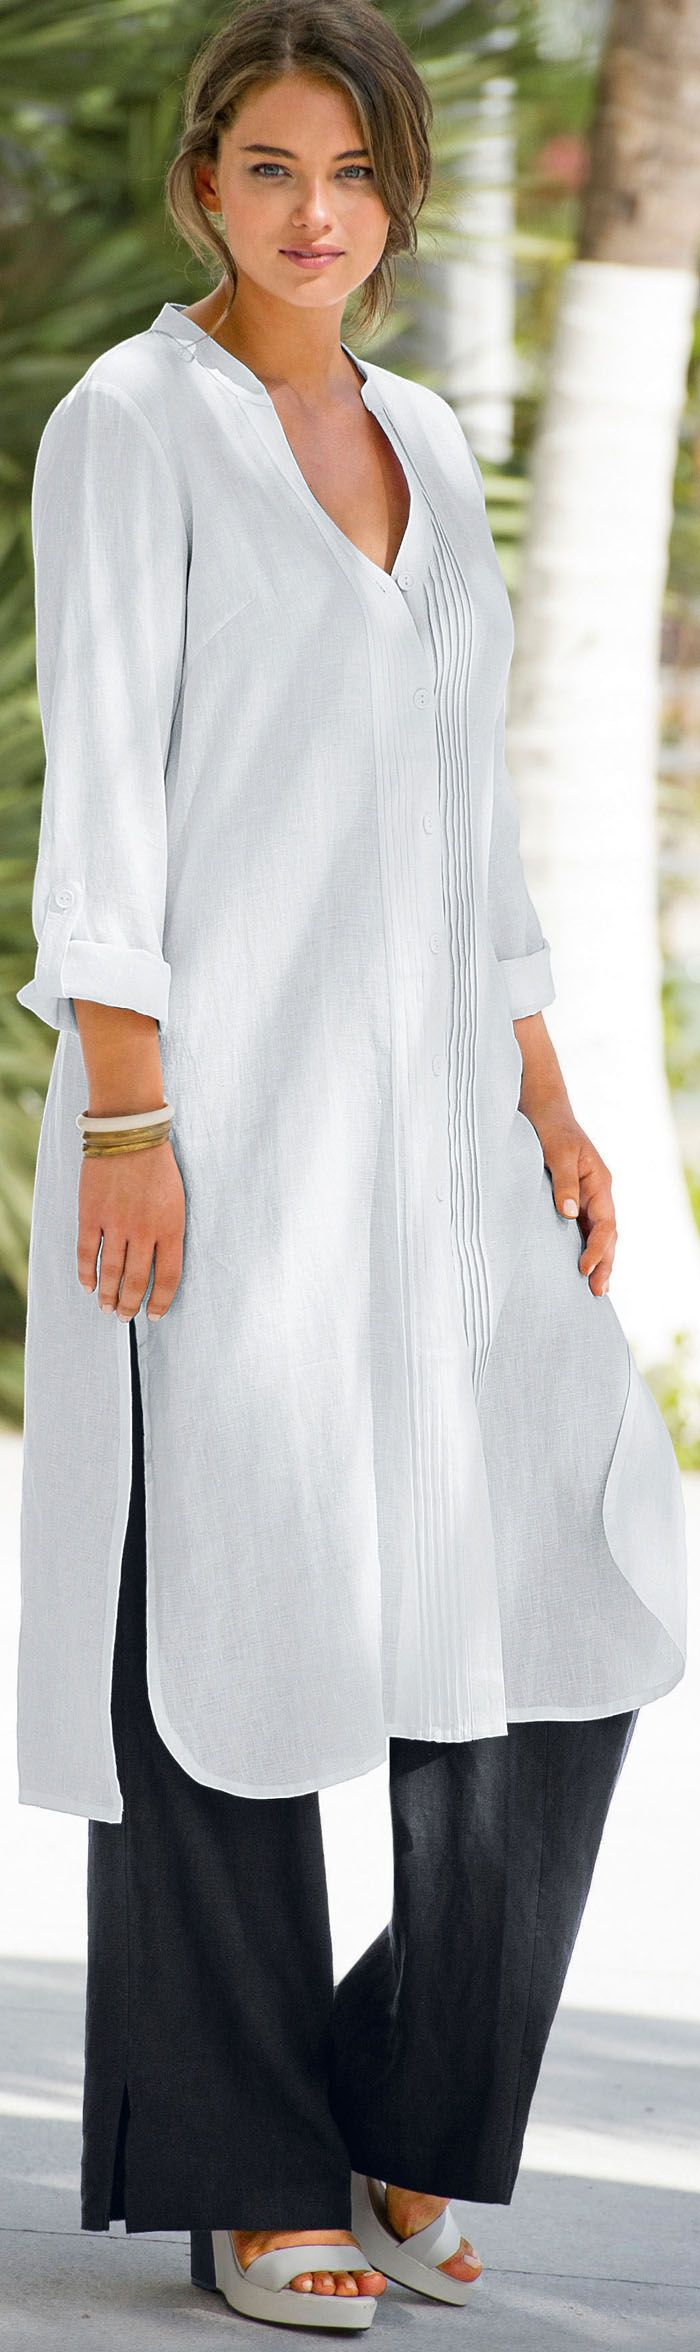 Best dresses to wear to a beach wedding   best images about White dresses on Pinterest  Caftans Tunics and